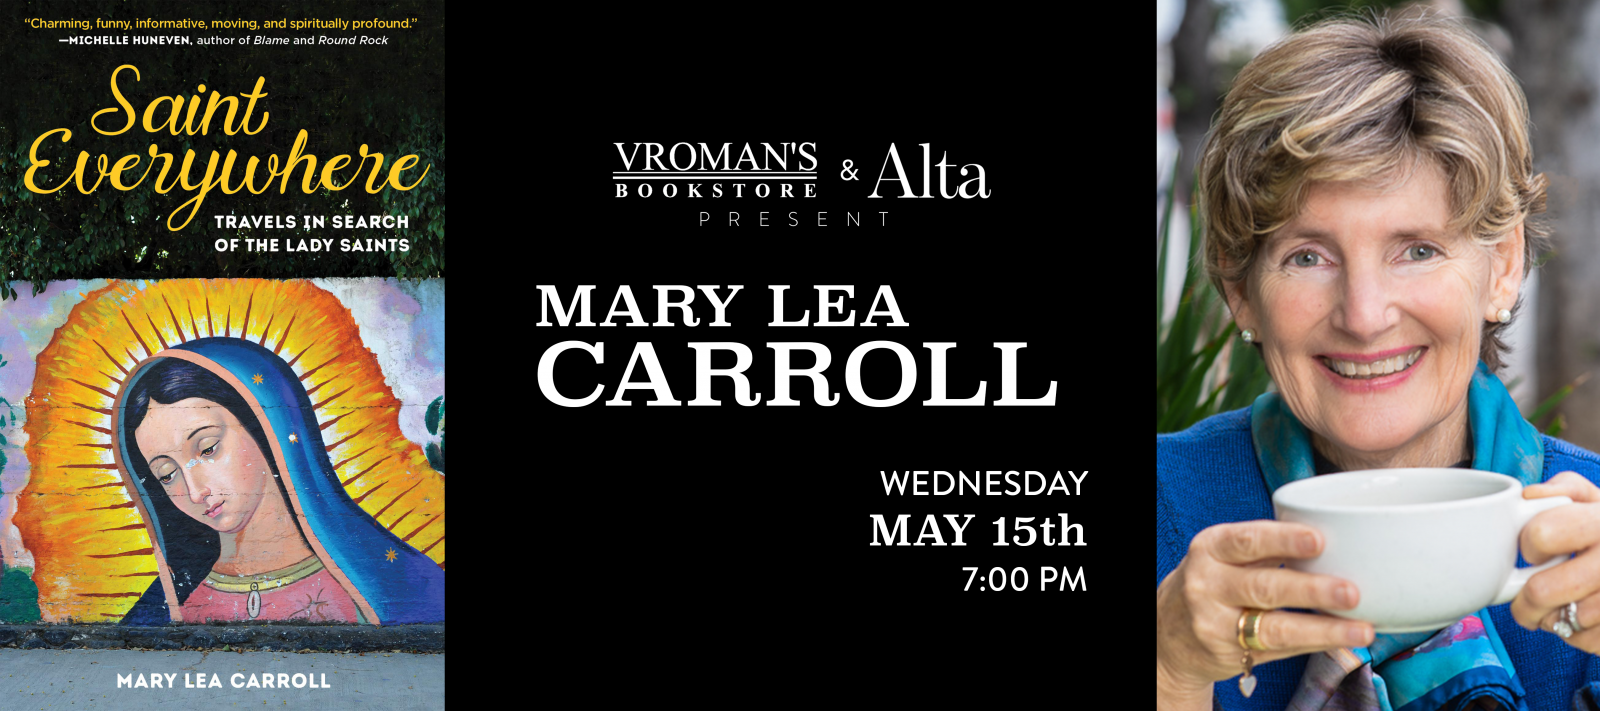 Mary Lea Carroll book signing Wednesday May 15th at 7pm